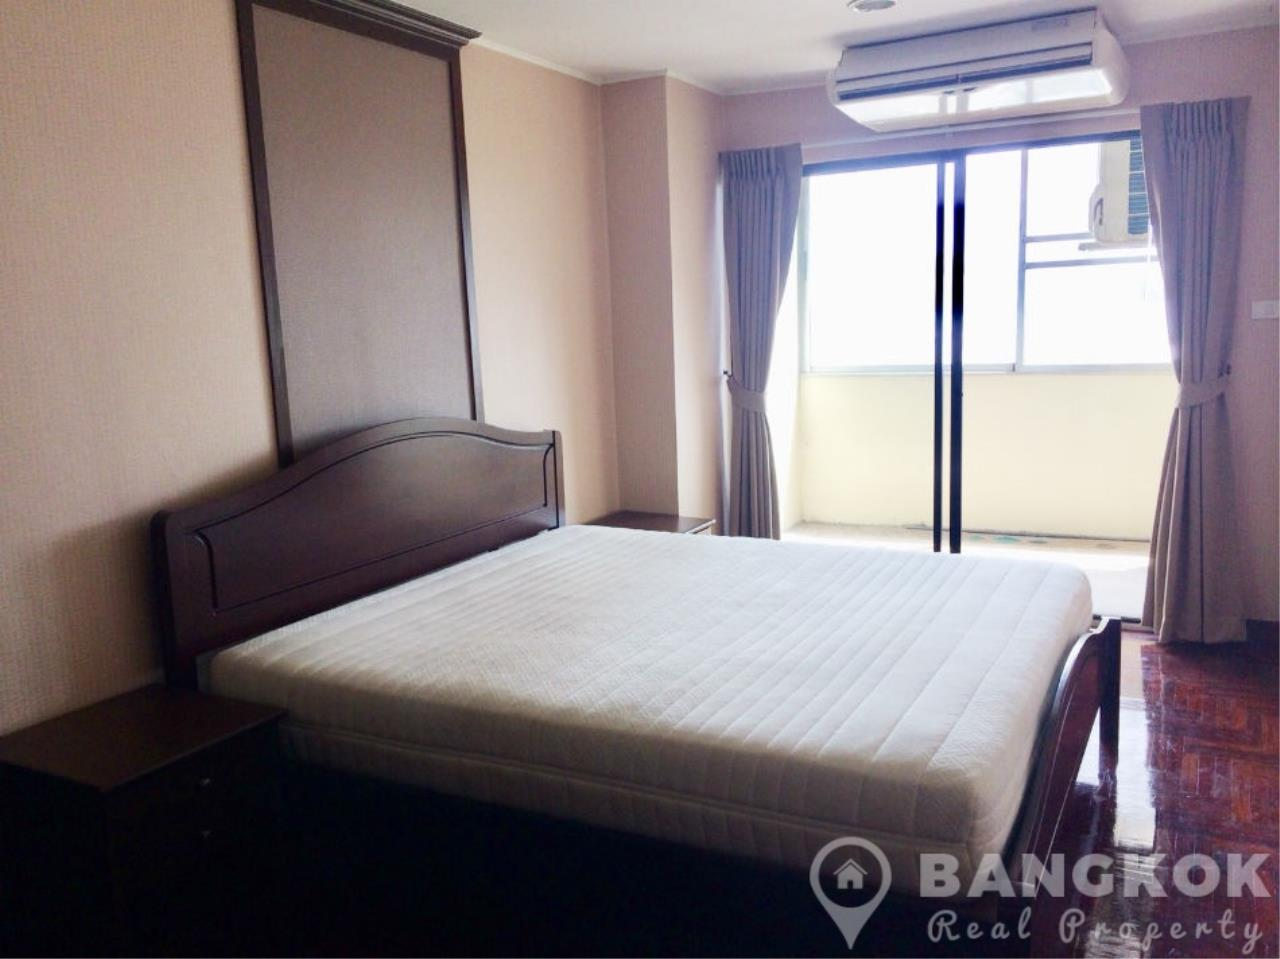 Bangkok Real Property Agency's Casa Viva | Very Spacious 3 Bed 3 Bath Condo in Ekkamai 11